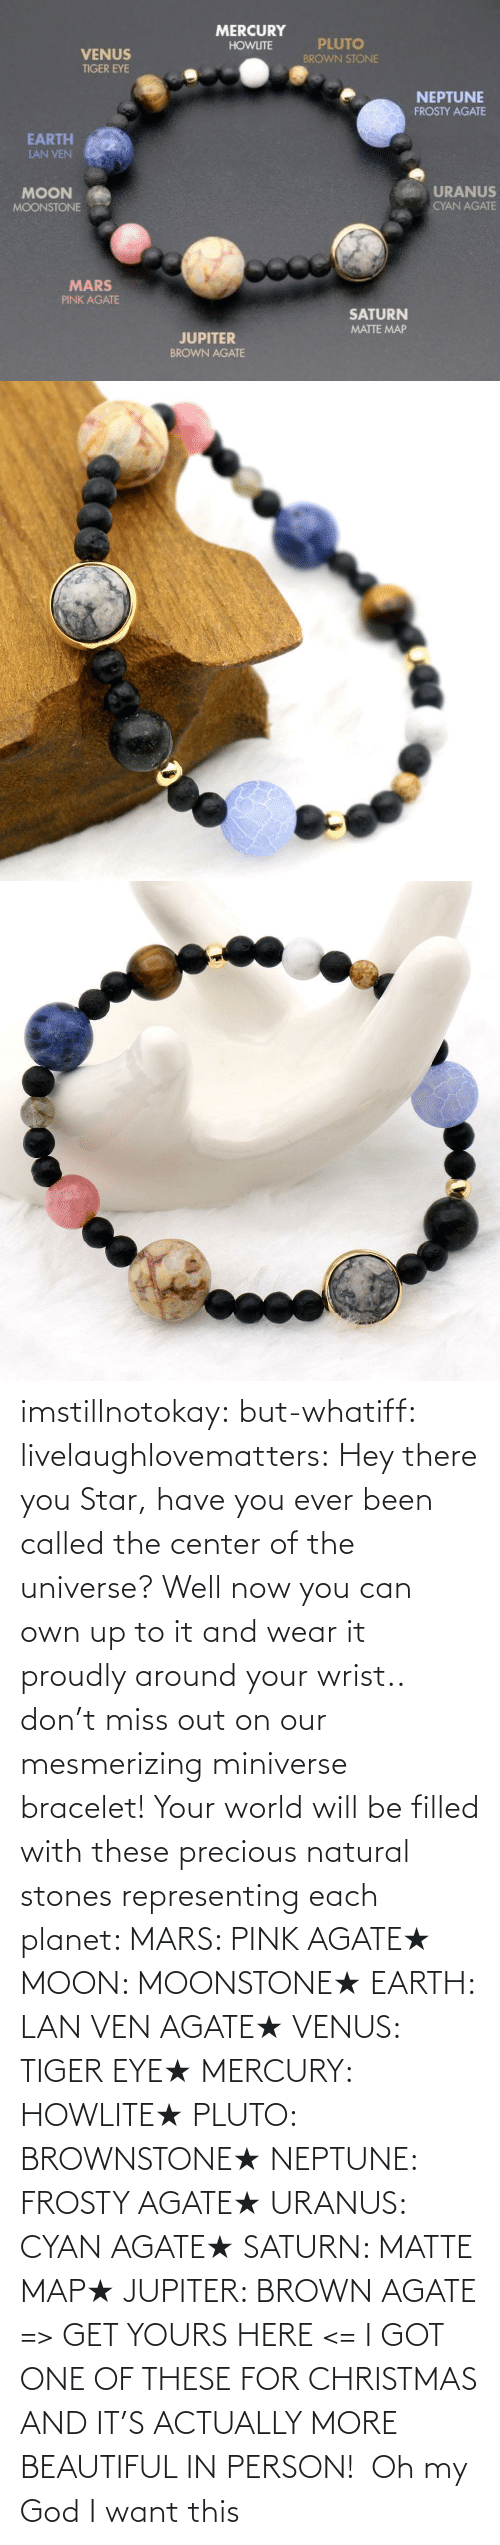 eye: imstillnotokay:  but-whatiff: livelaughlovematters:  Hey there you Star, have you ever been called the center of the universe? Well now you can own up to it and wear it proudly around your wrist.. don't miss out on our mesmerizing miniverse bracelet! Your world will be filled with these precious natural stones representing each planet:  MARS: PINK AGATE★ MOON: MOONSTONE★ EARTH: LAN VEN AGATE★ VENUS: TIGER EYE★ MERCURY: HOWLITE★ PLUTO: BROWNSTONE★ NEPTUNE: FROSTY AGATE★ URANUS: CYAN AGATE★ SATURN: MATTE MAP★ JUPITER: BROWN AGATE => GET YOURS HERE <=  I GOT ONE OF THESE FOR CHRISTMAS AND IT'S ACTUALLY MORE BEAUTIFUL IN PERSON!     Oh my God I want this